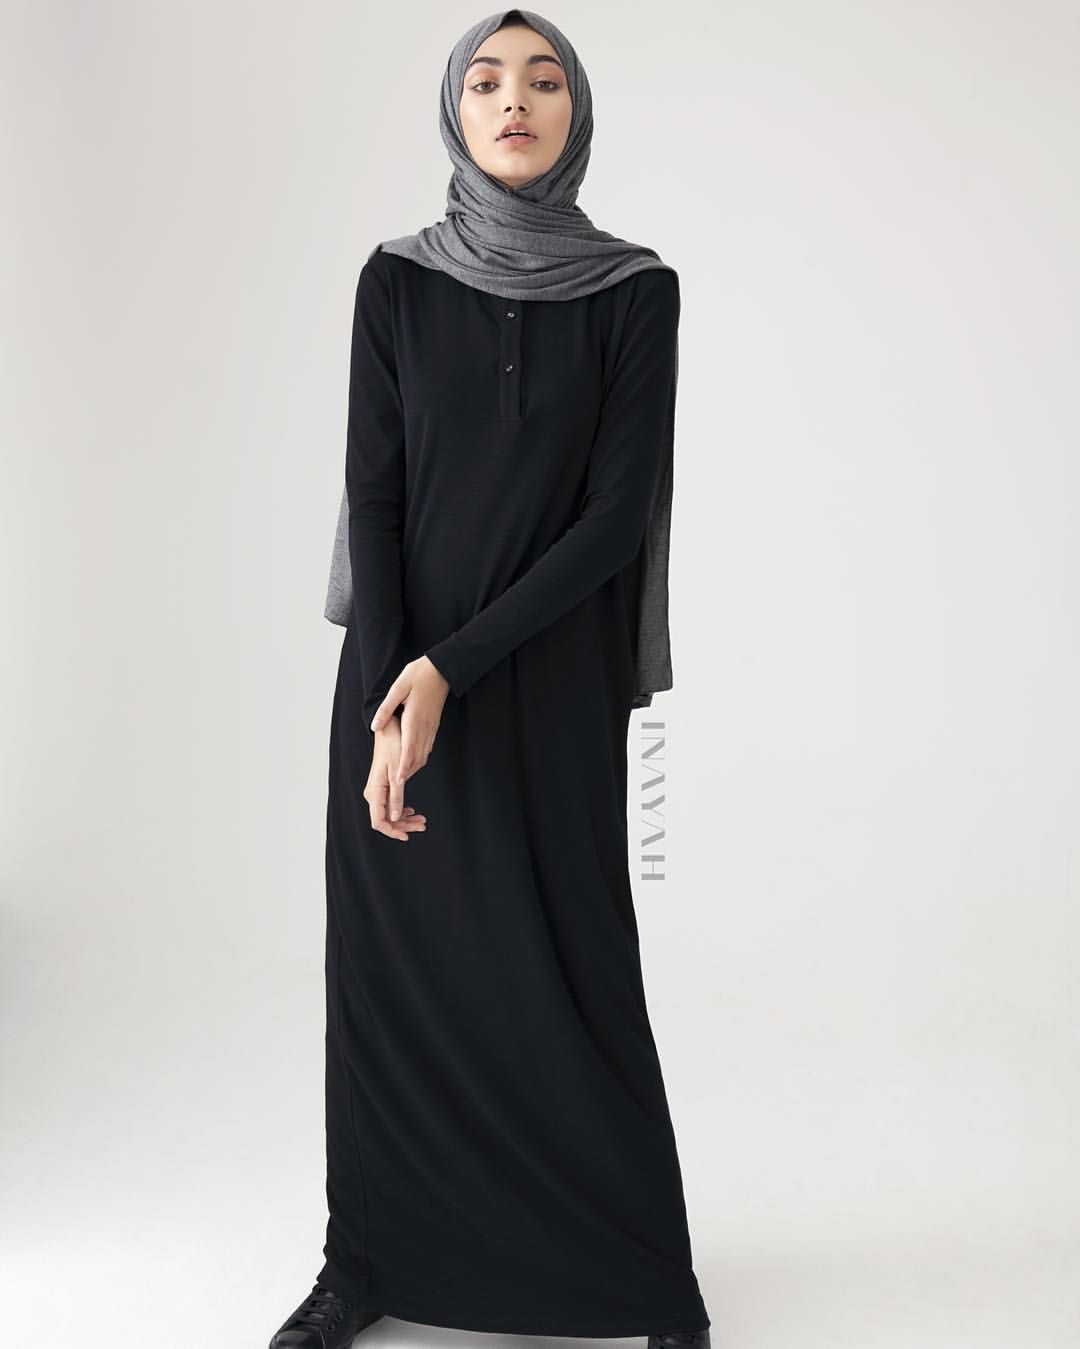 INAYAH  NEW ARRIVALS - We go through meticulous design stages to